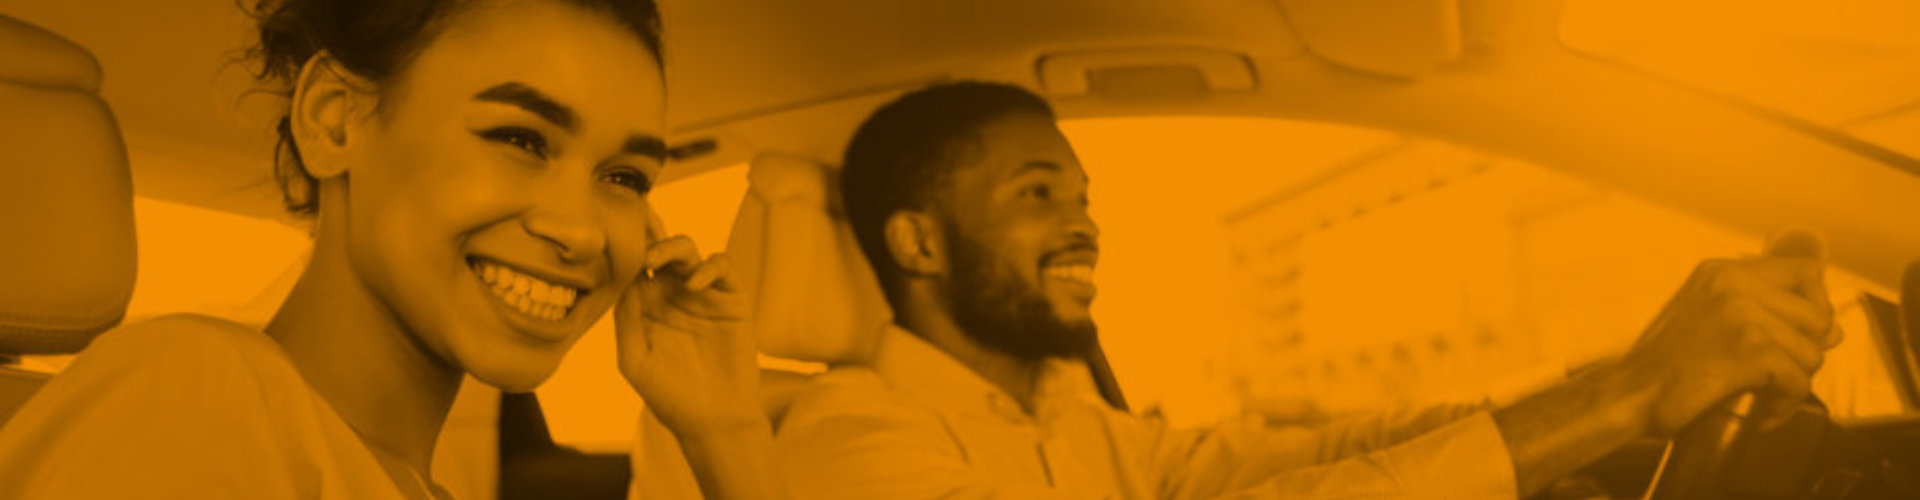 woman and man smiling inside car